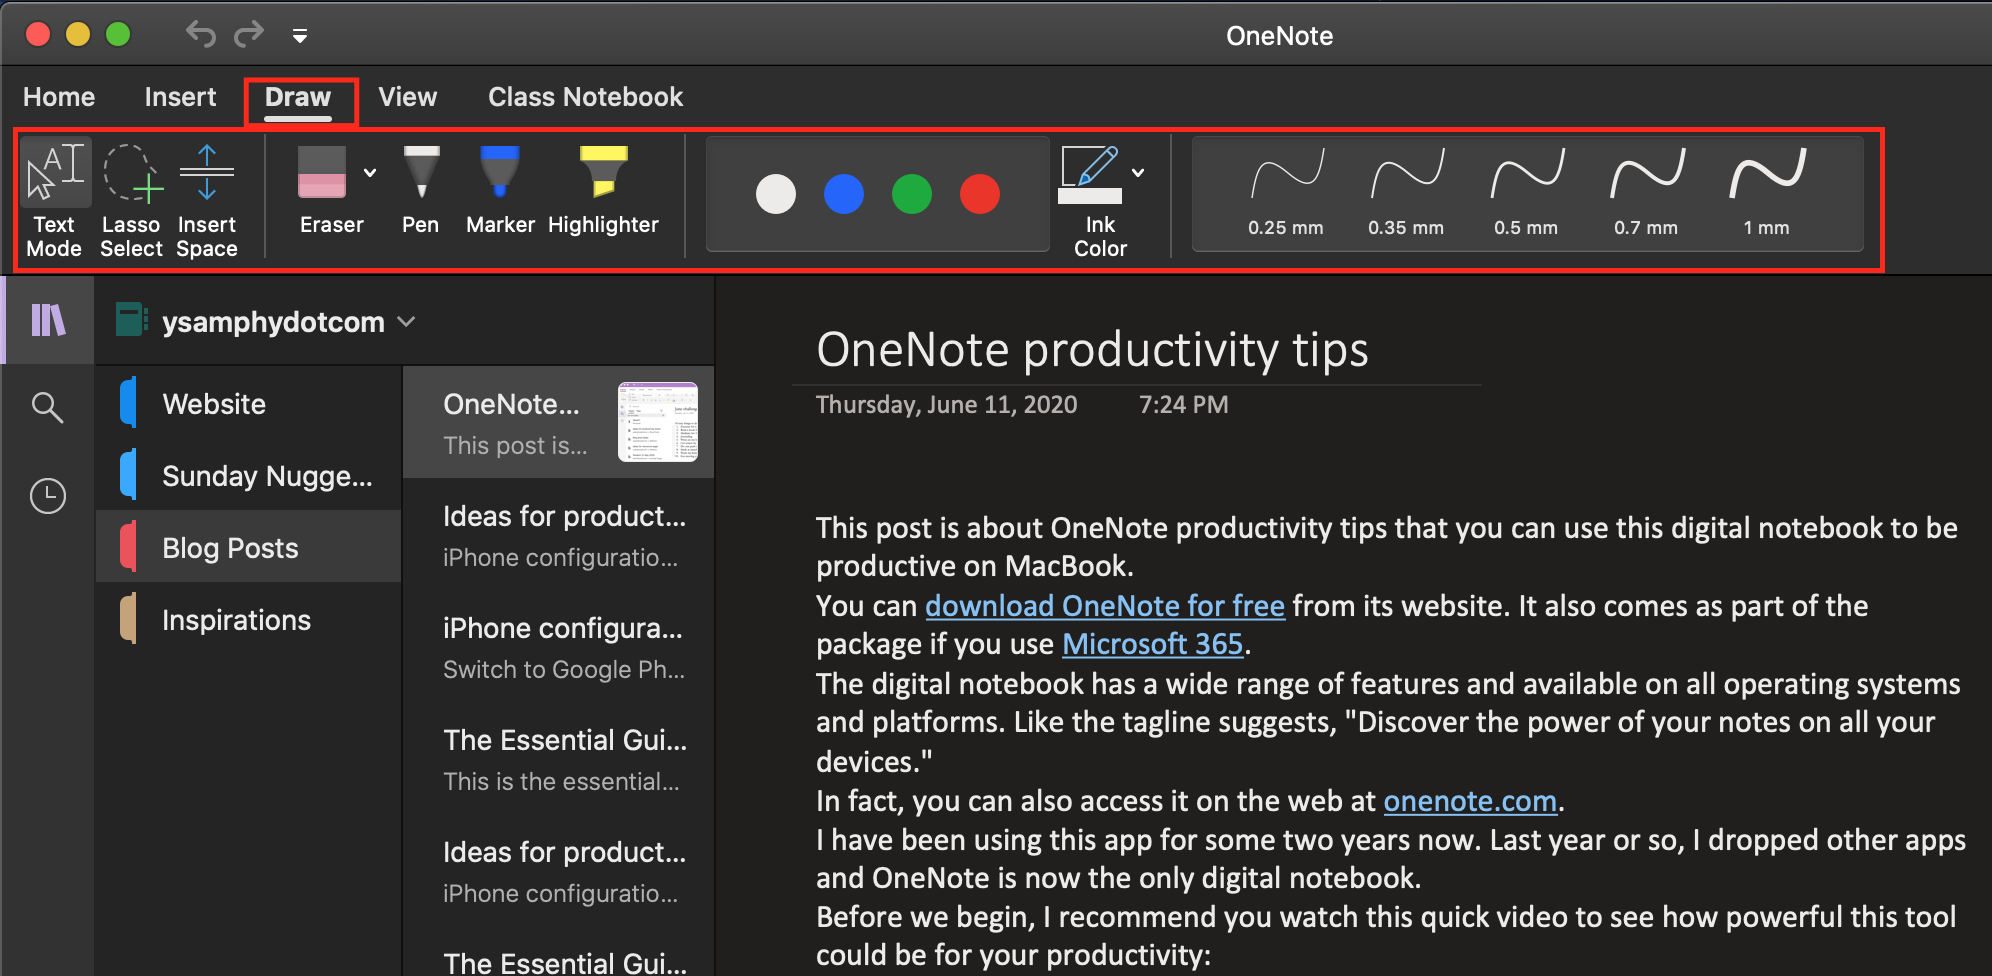 Drawing tools in OneNote